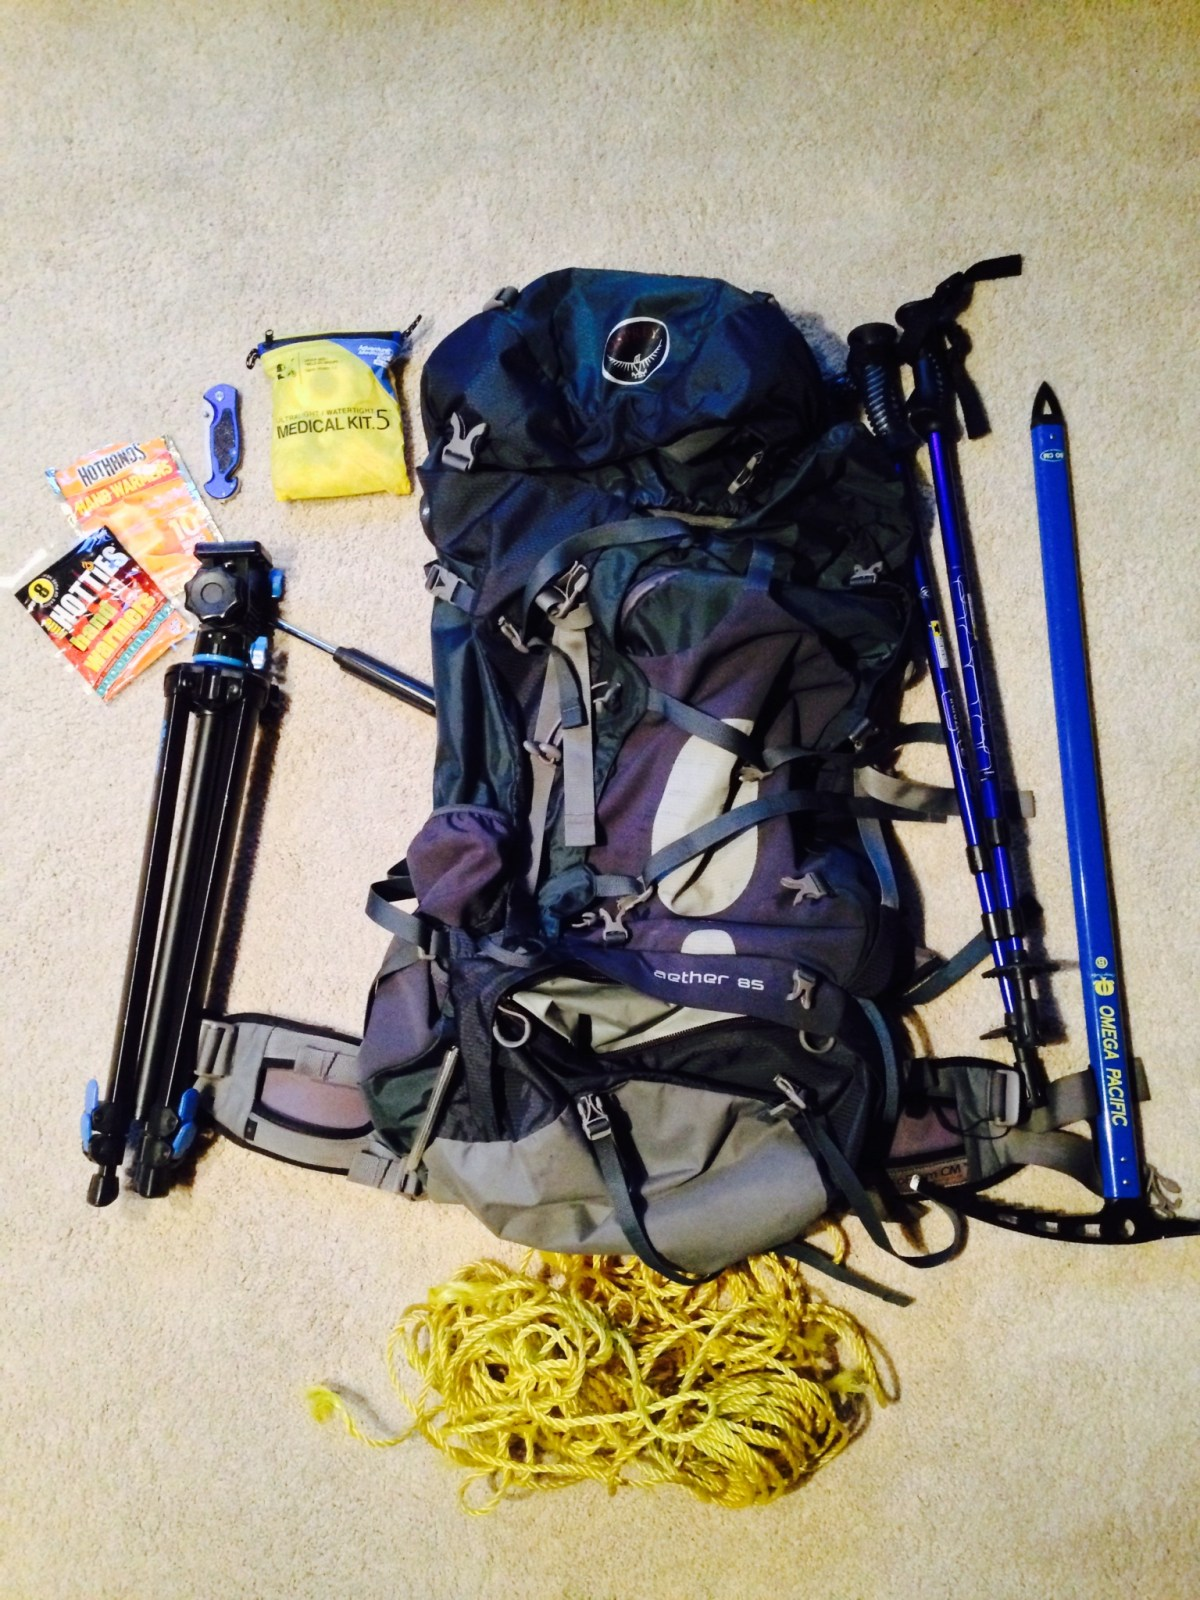 Osprey Aether 85L backpack, camera tri-pod, Omega Pacific 80cm ice axe, Mountainsmith trekking poles, paracord, med-kit, knife, hand warmers